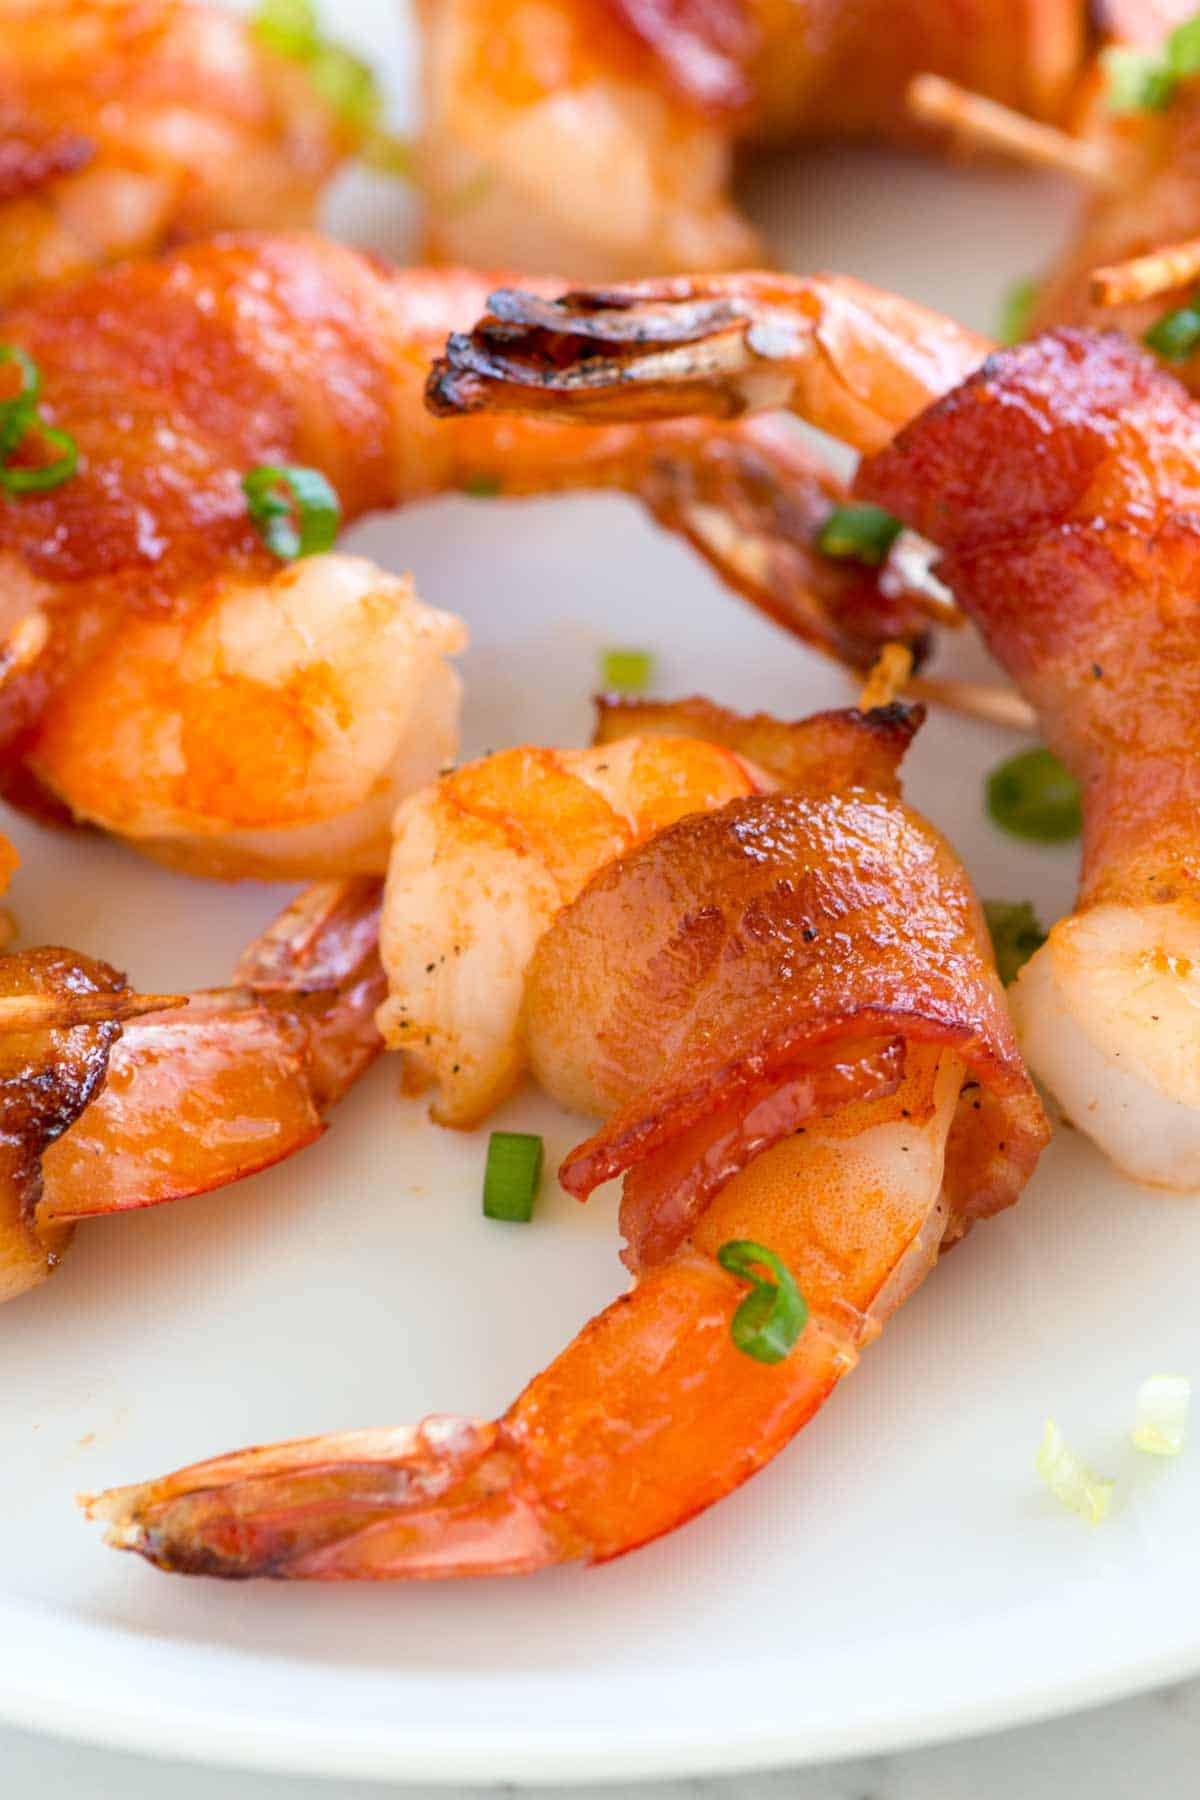 How To Make The Best Bacon Wrapped Shrimp